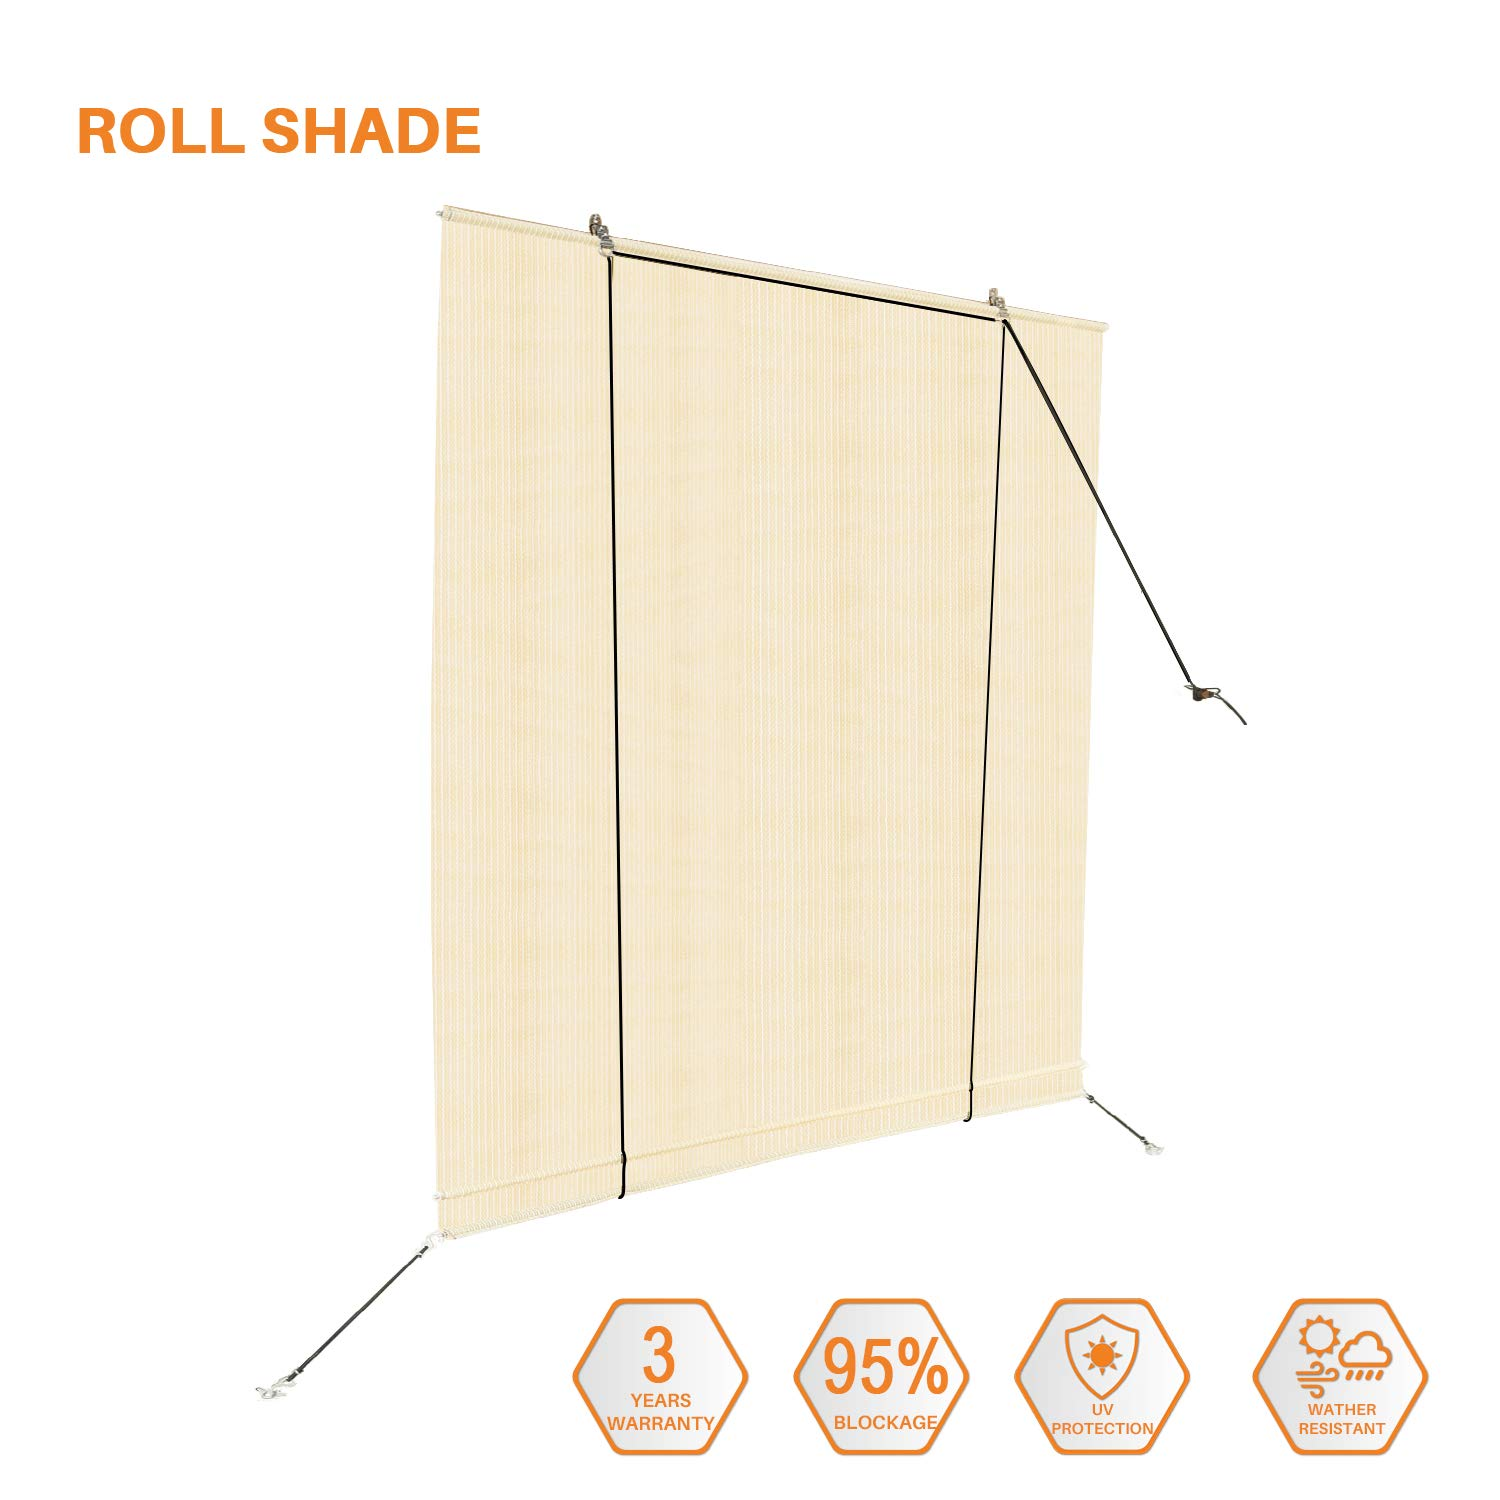 TANG Sunshades Depot Exterior Roller Shade Roll up Shade for Patio Deck Porch Pergola Balcony Backyard Patio or Other Outdoor Spaces Blinds Light Filtering Block 90% UV Rays 7' W x 5' L Beige